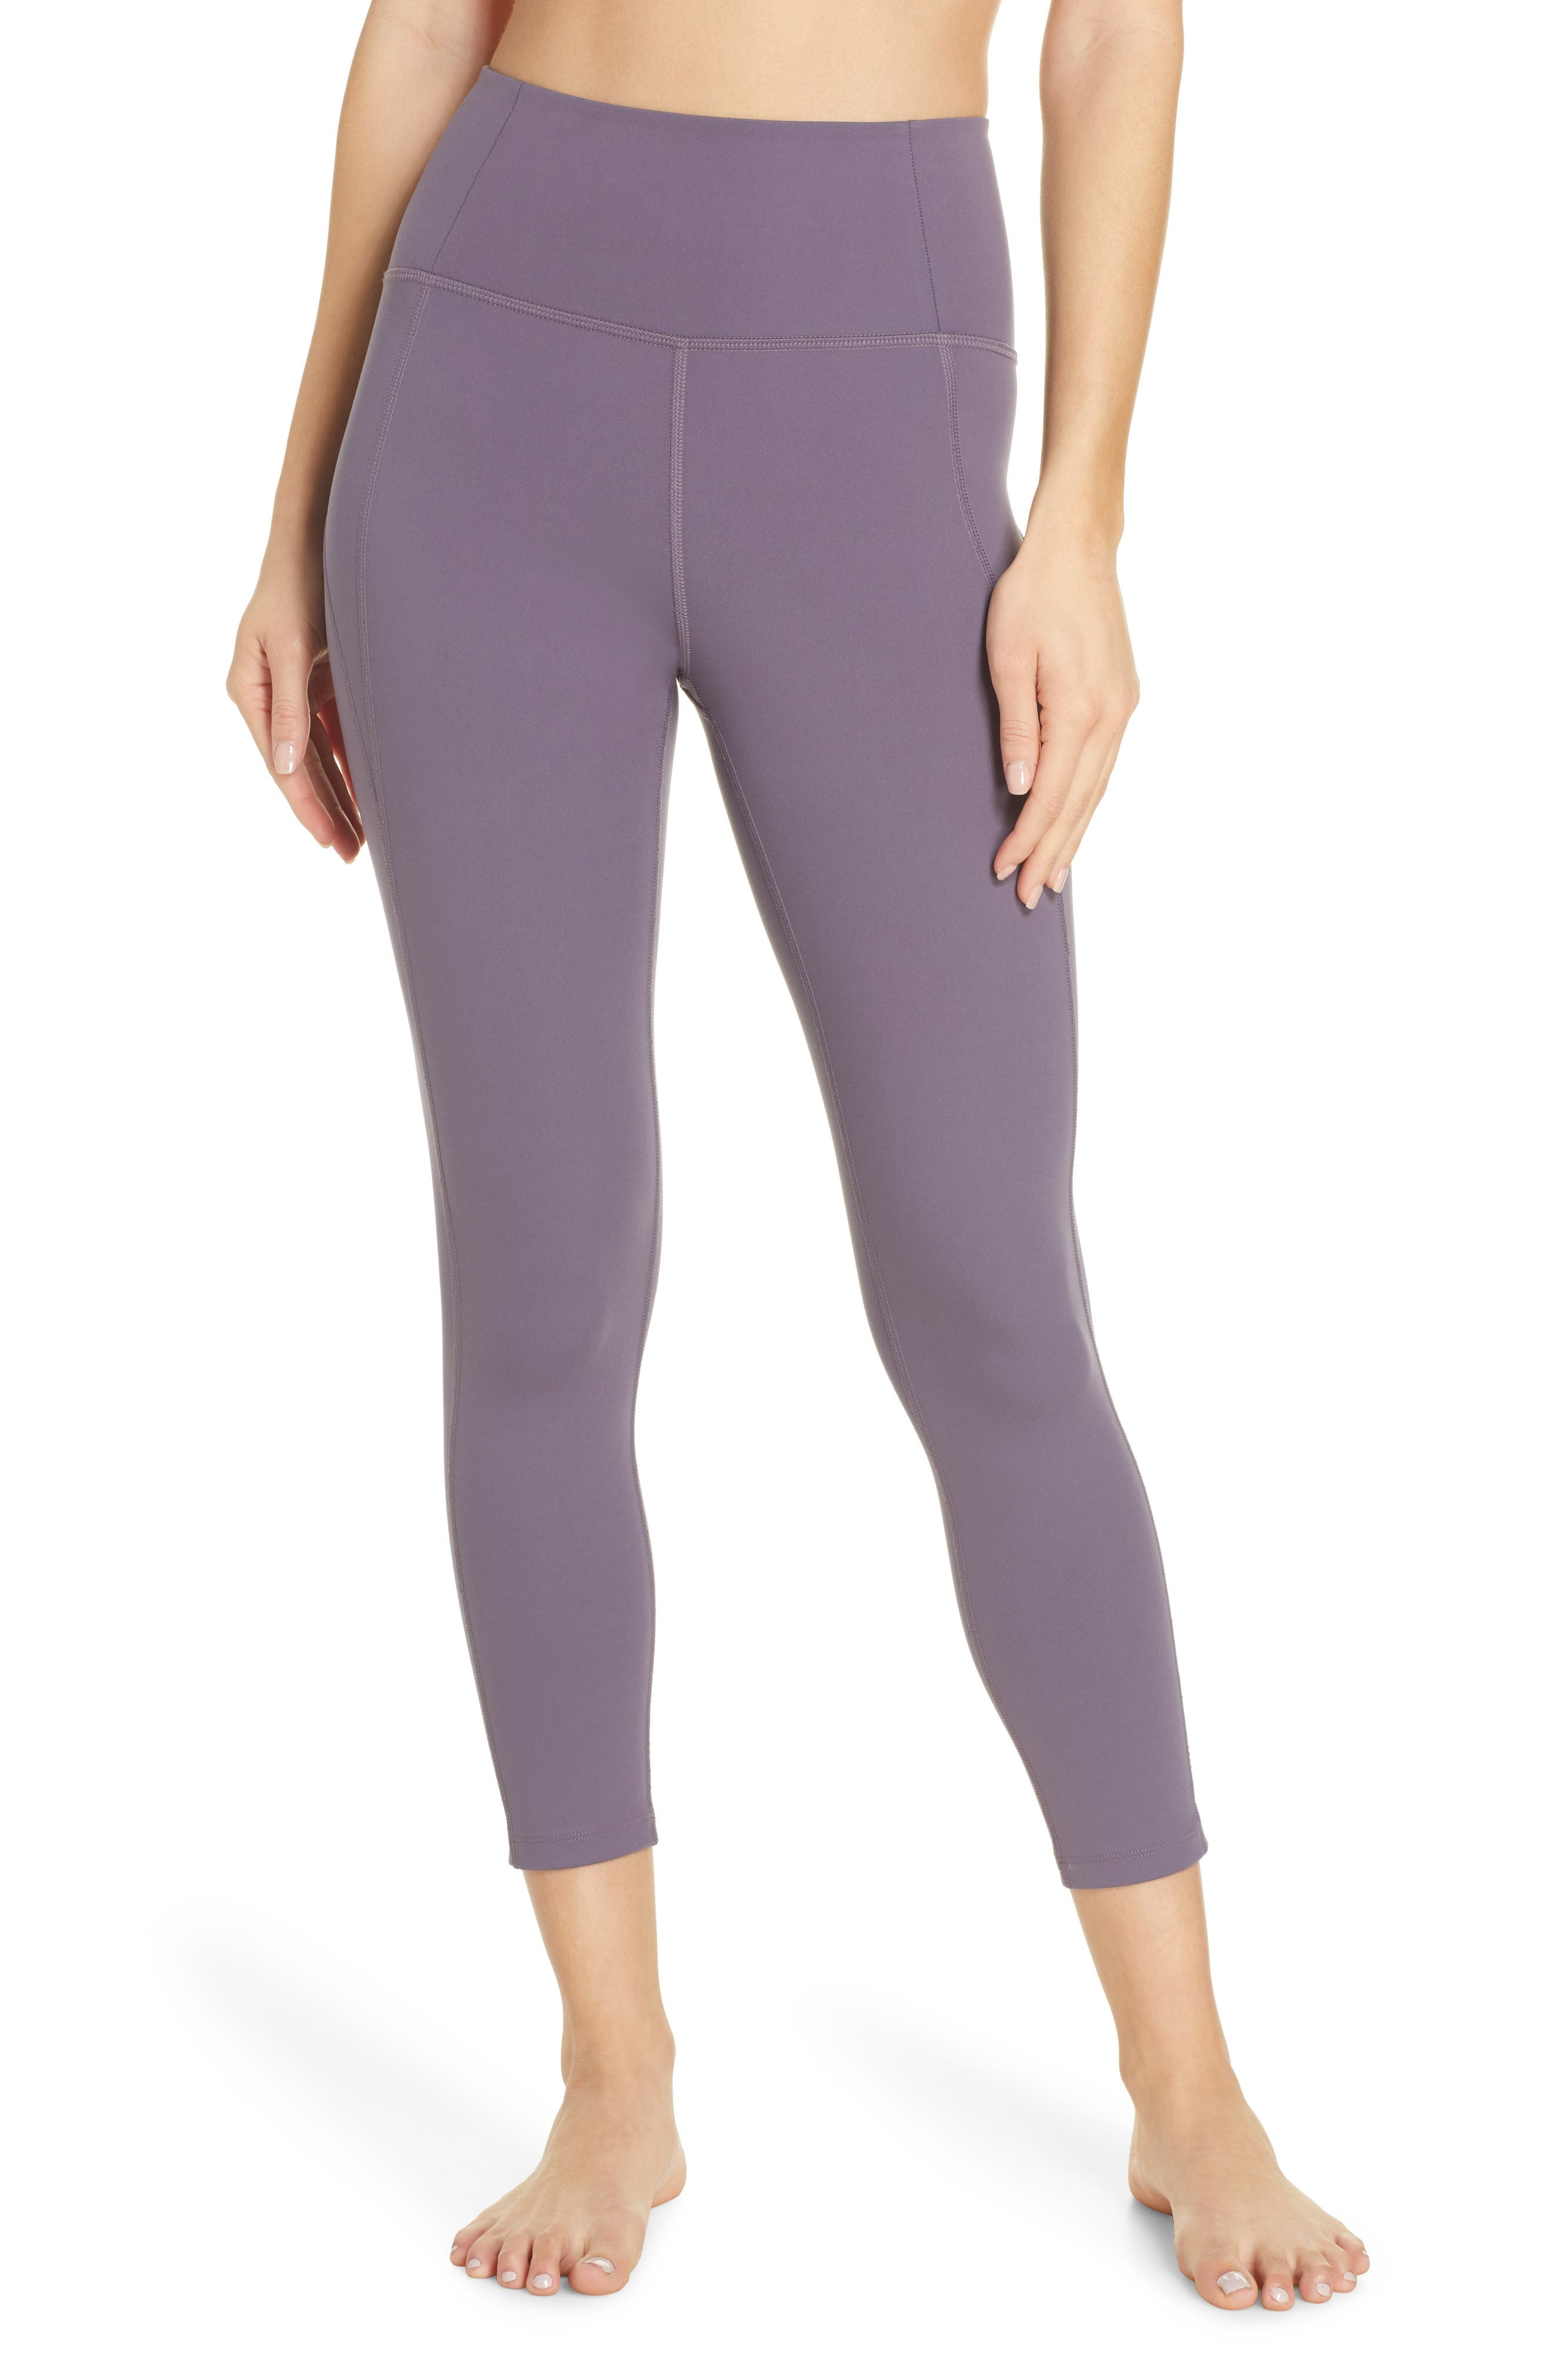 Girlfriend Collective High Waist 7/8 Leggings, Purple